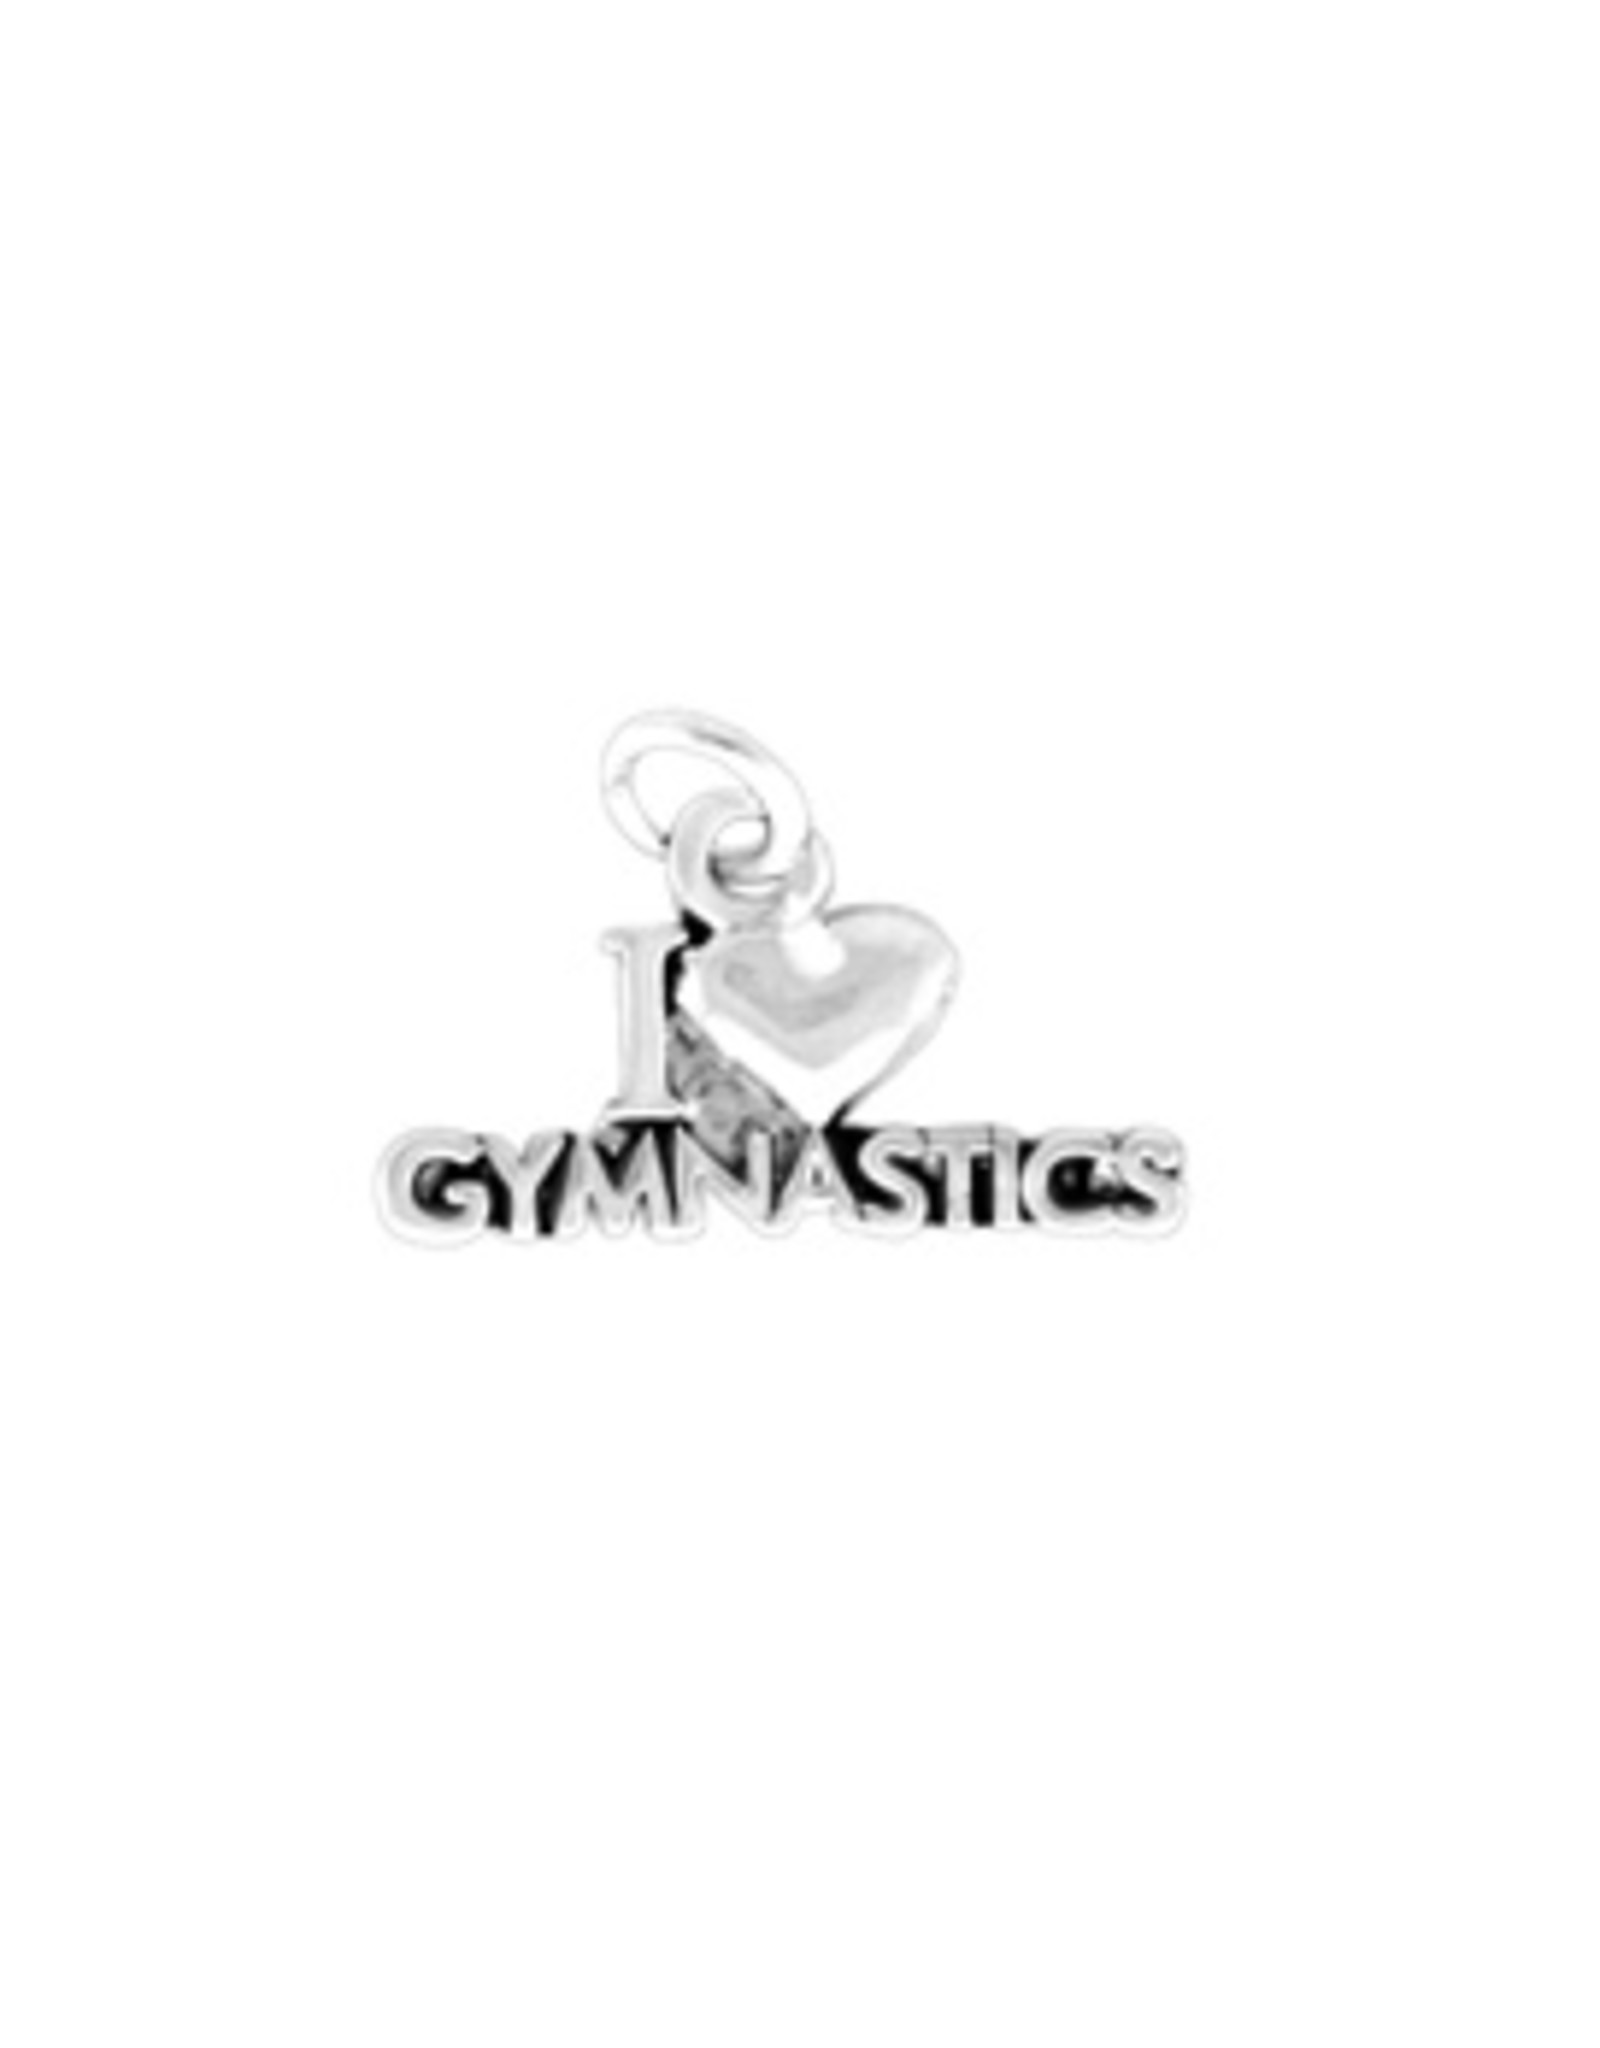 I (small Heart) Gymnastics